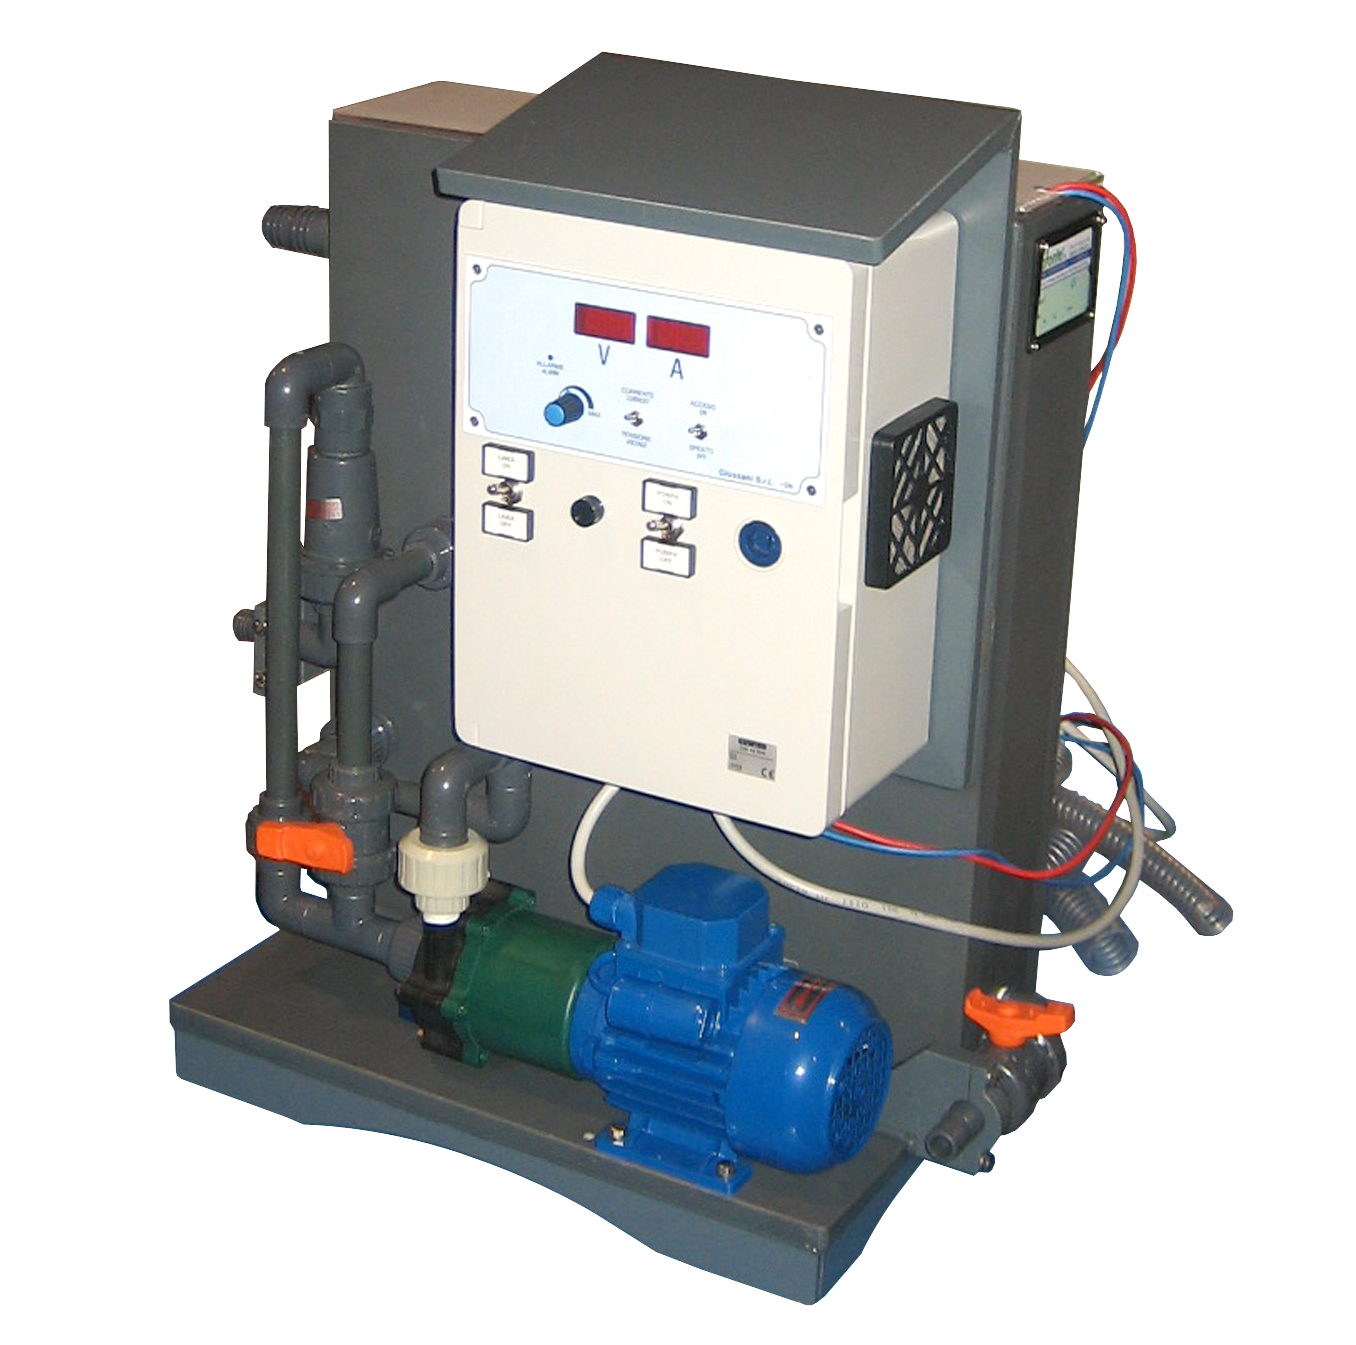 CHEMAG™ Precious Metal (Electrolytic) Recovery Systems by